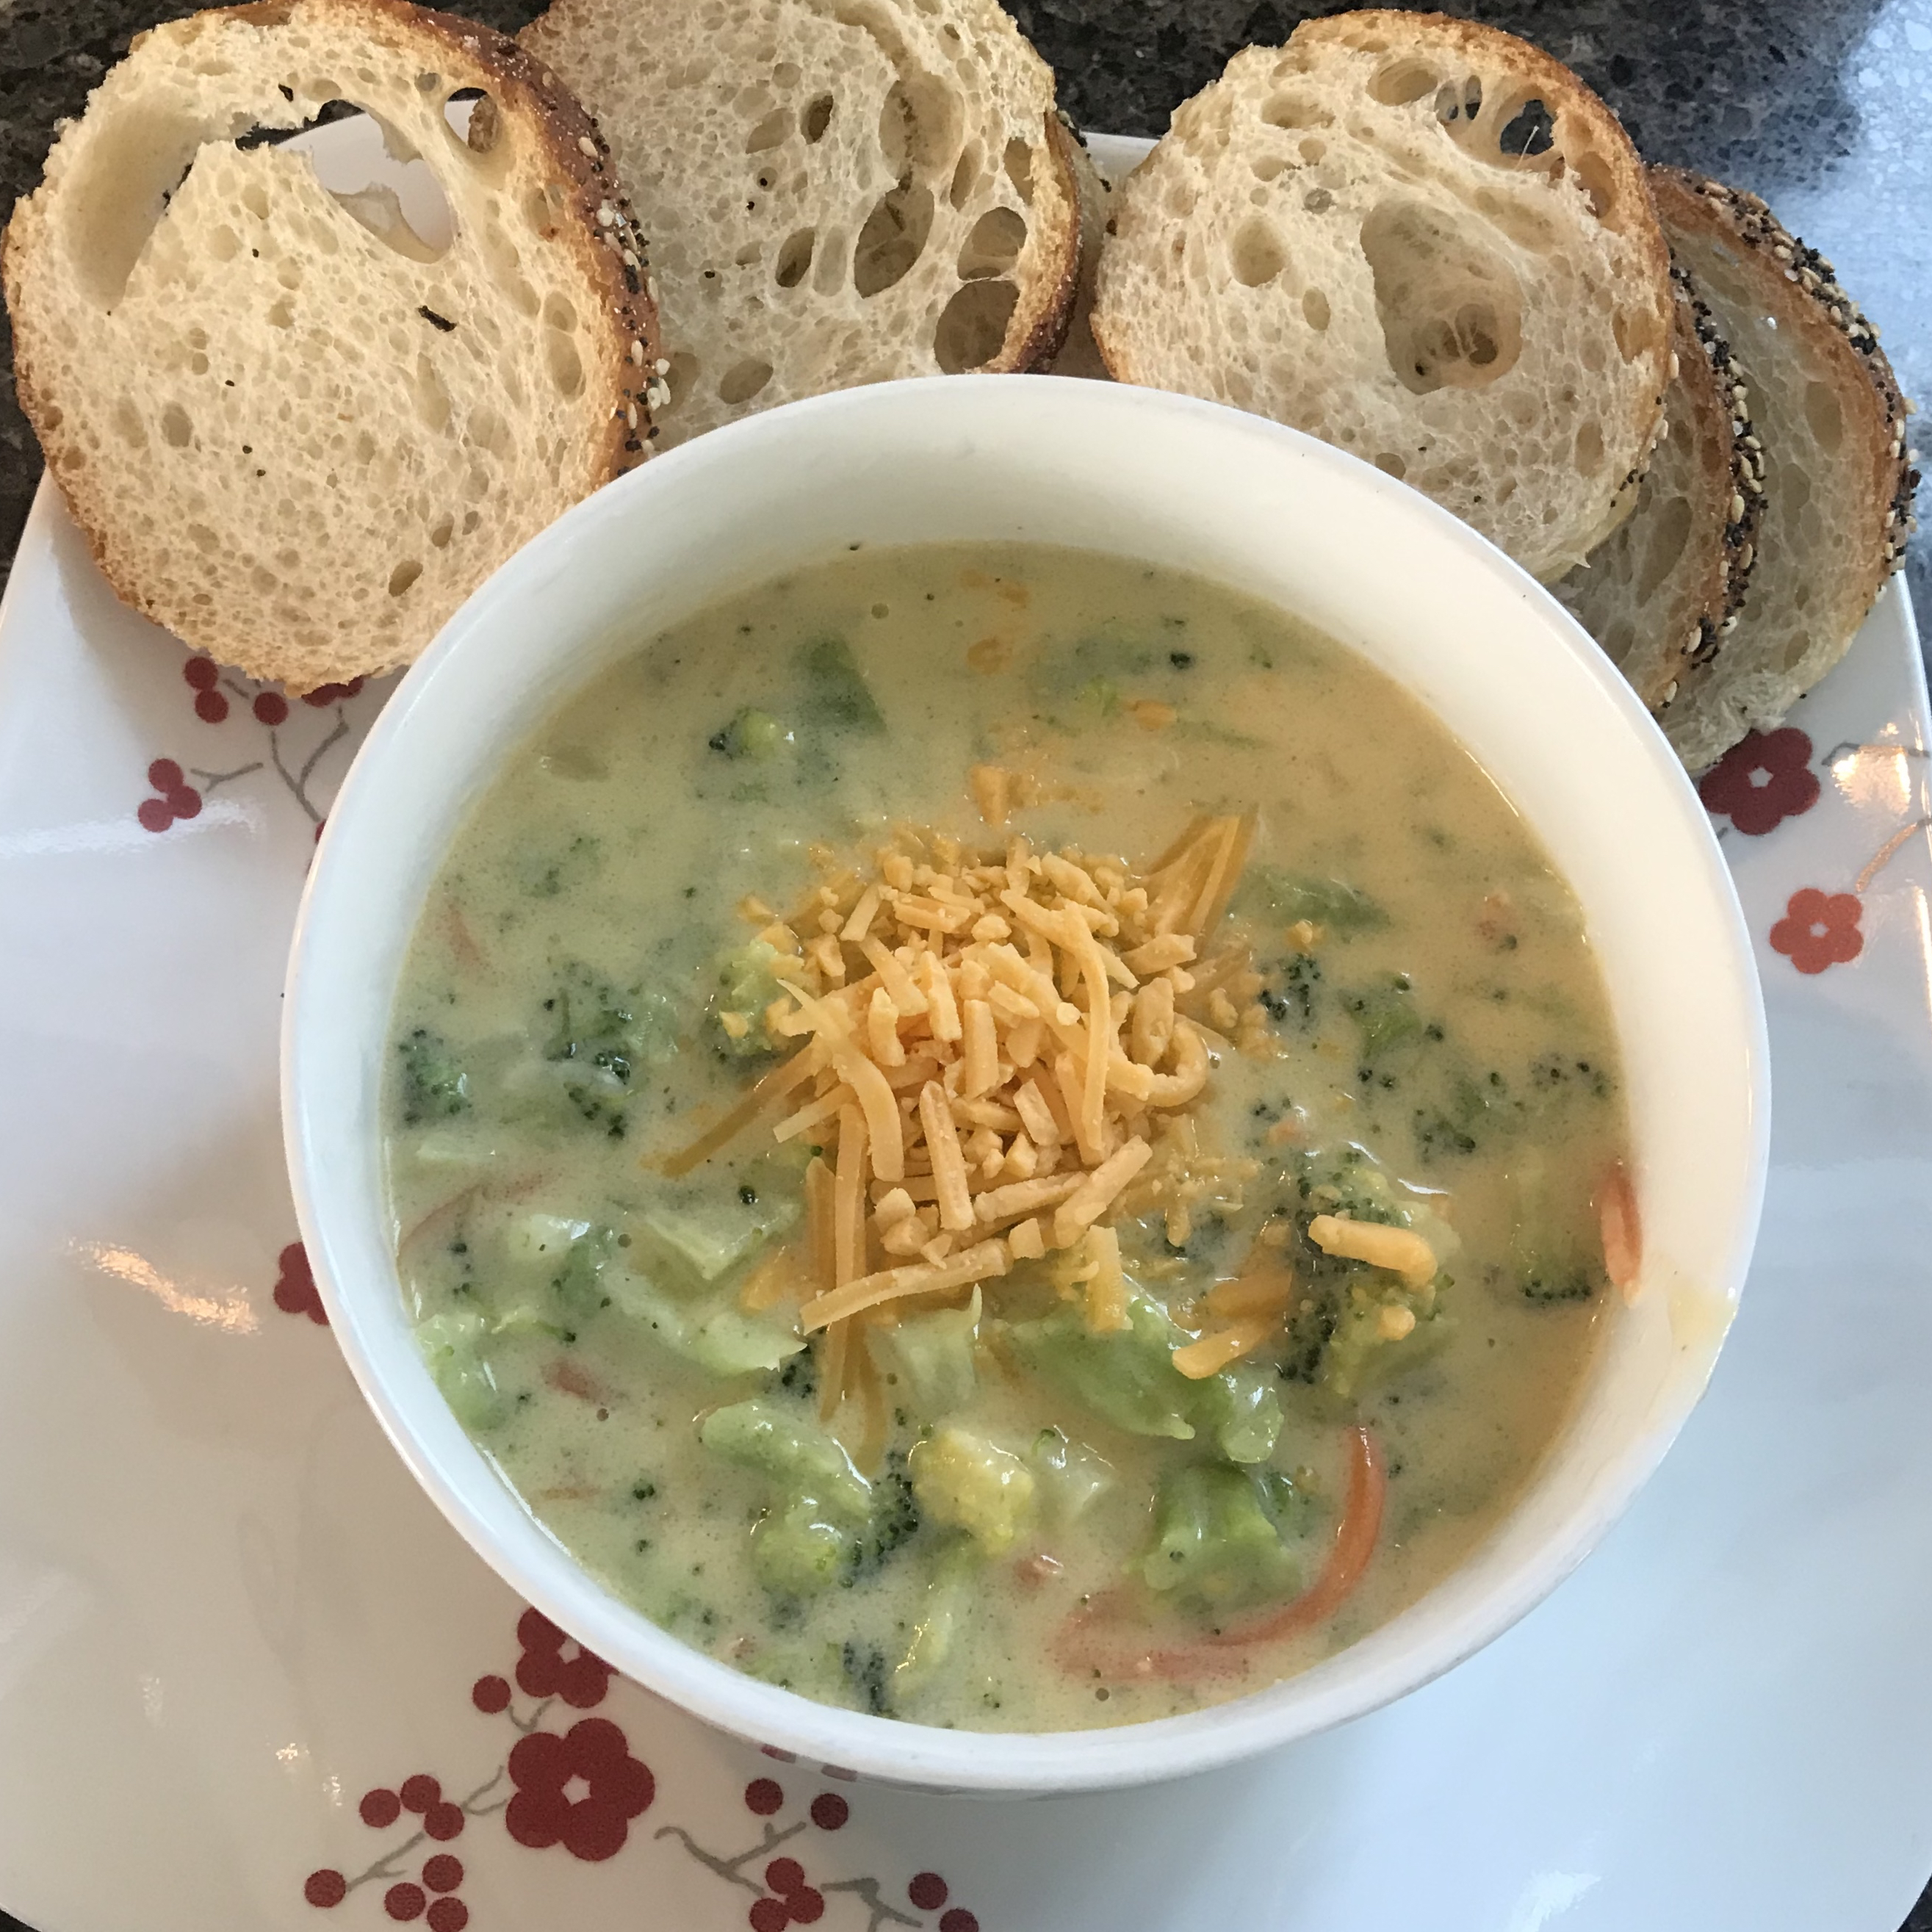 Sandy's Homemade Broccoli and Cheddar Soup